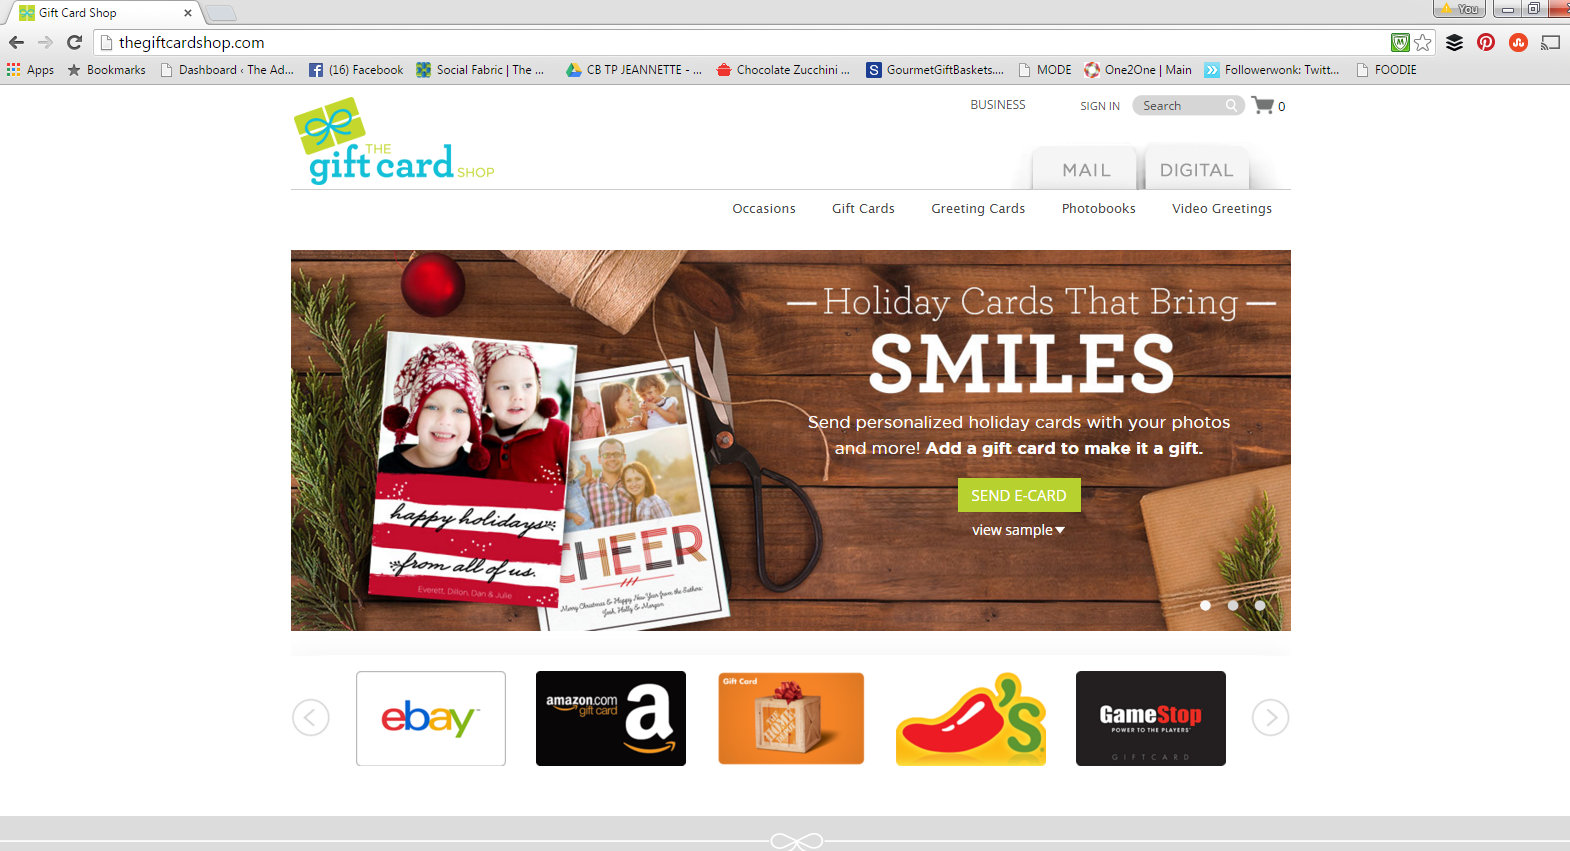 #eHolidays #ad gift Card Shop HOmepage